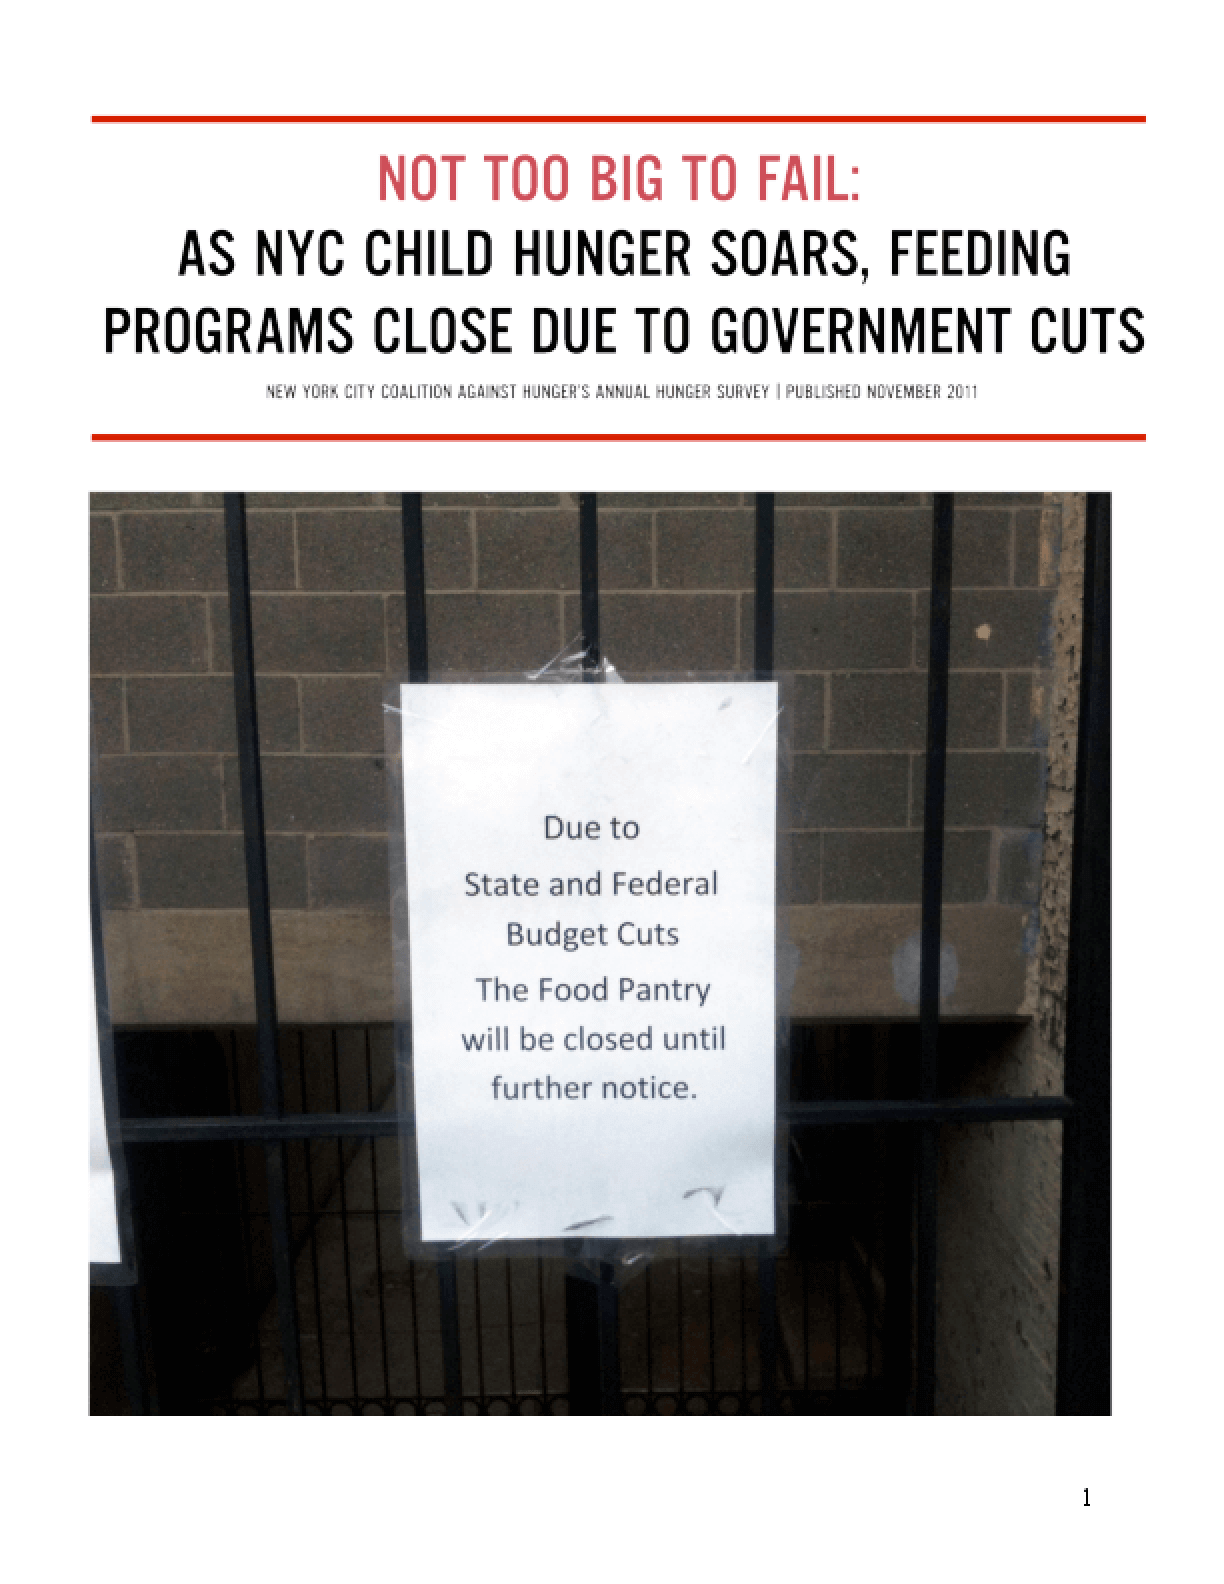 Not Too Big to Fail: As NYC Child Hunger Soars, Feeding Programs Close Due to Federal Cuts